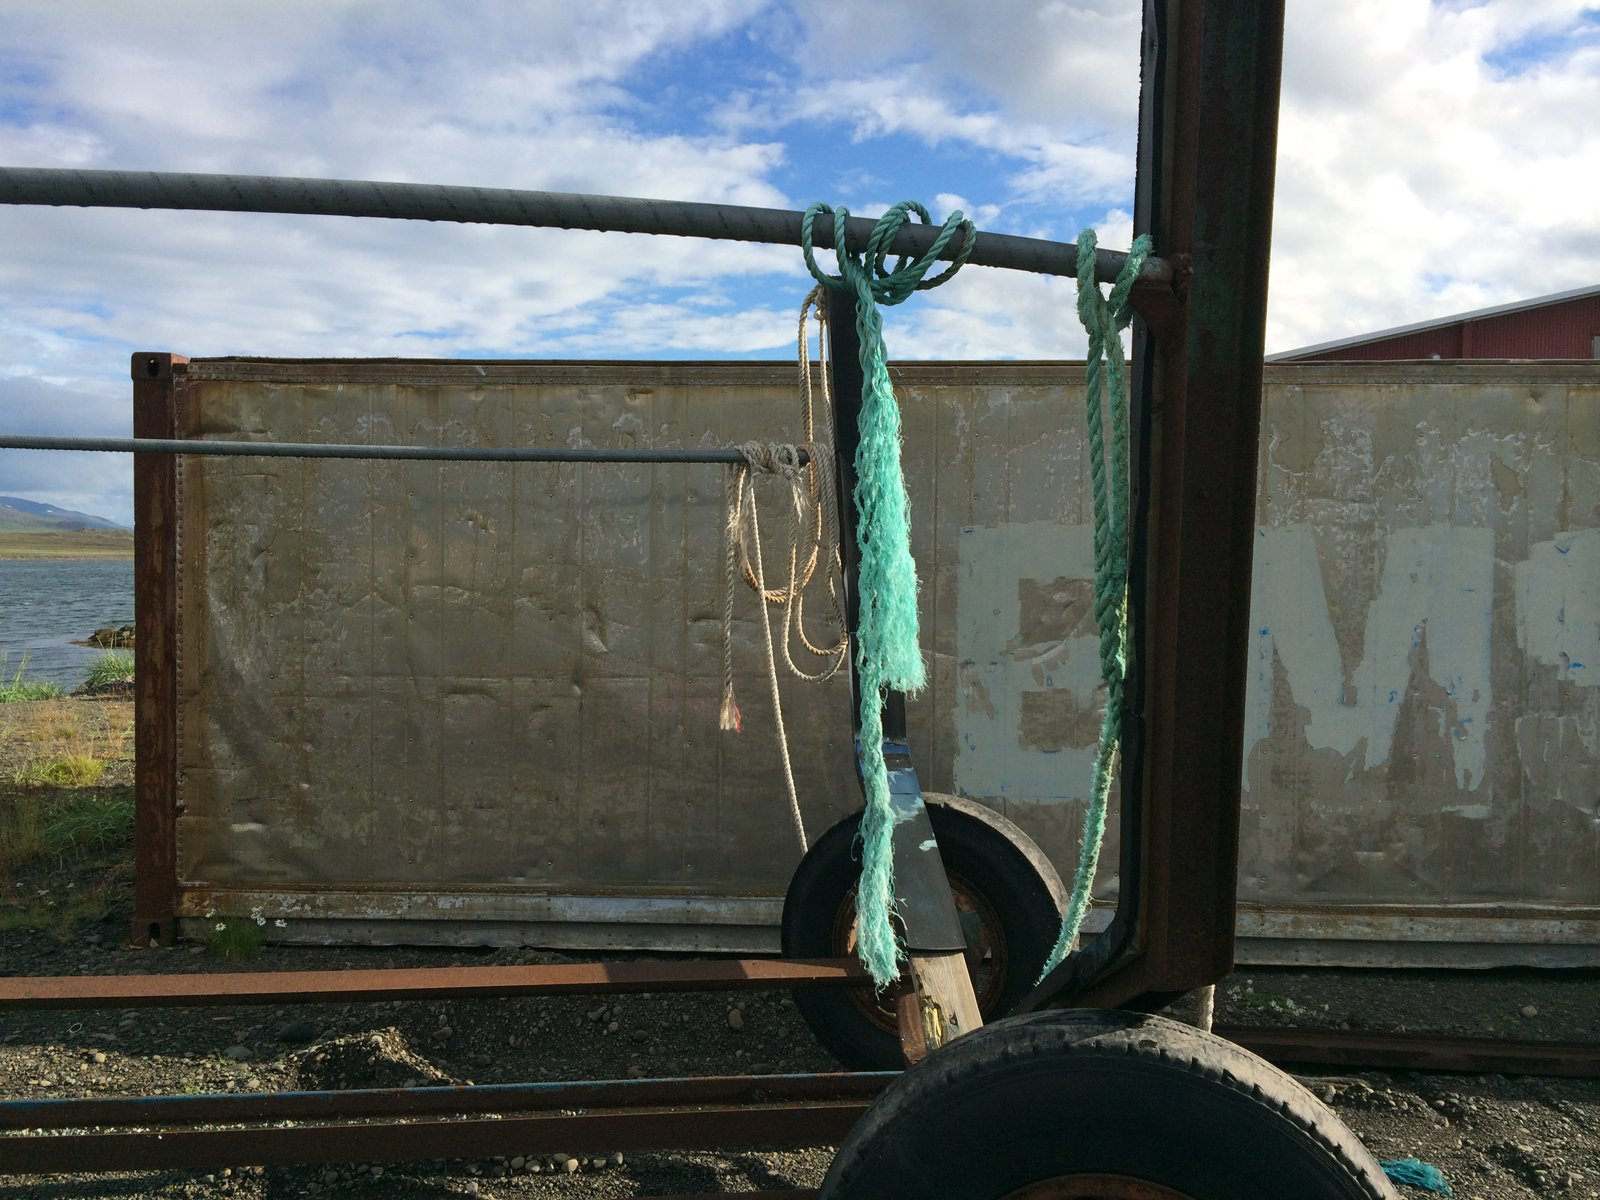 Frayed teal-colored and white rope hangs from an old rusty metal trailer frame.